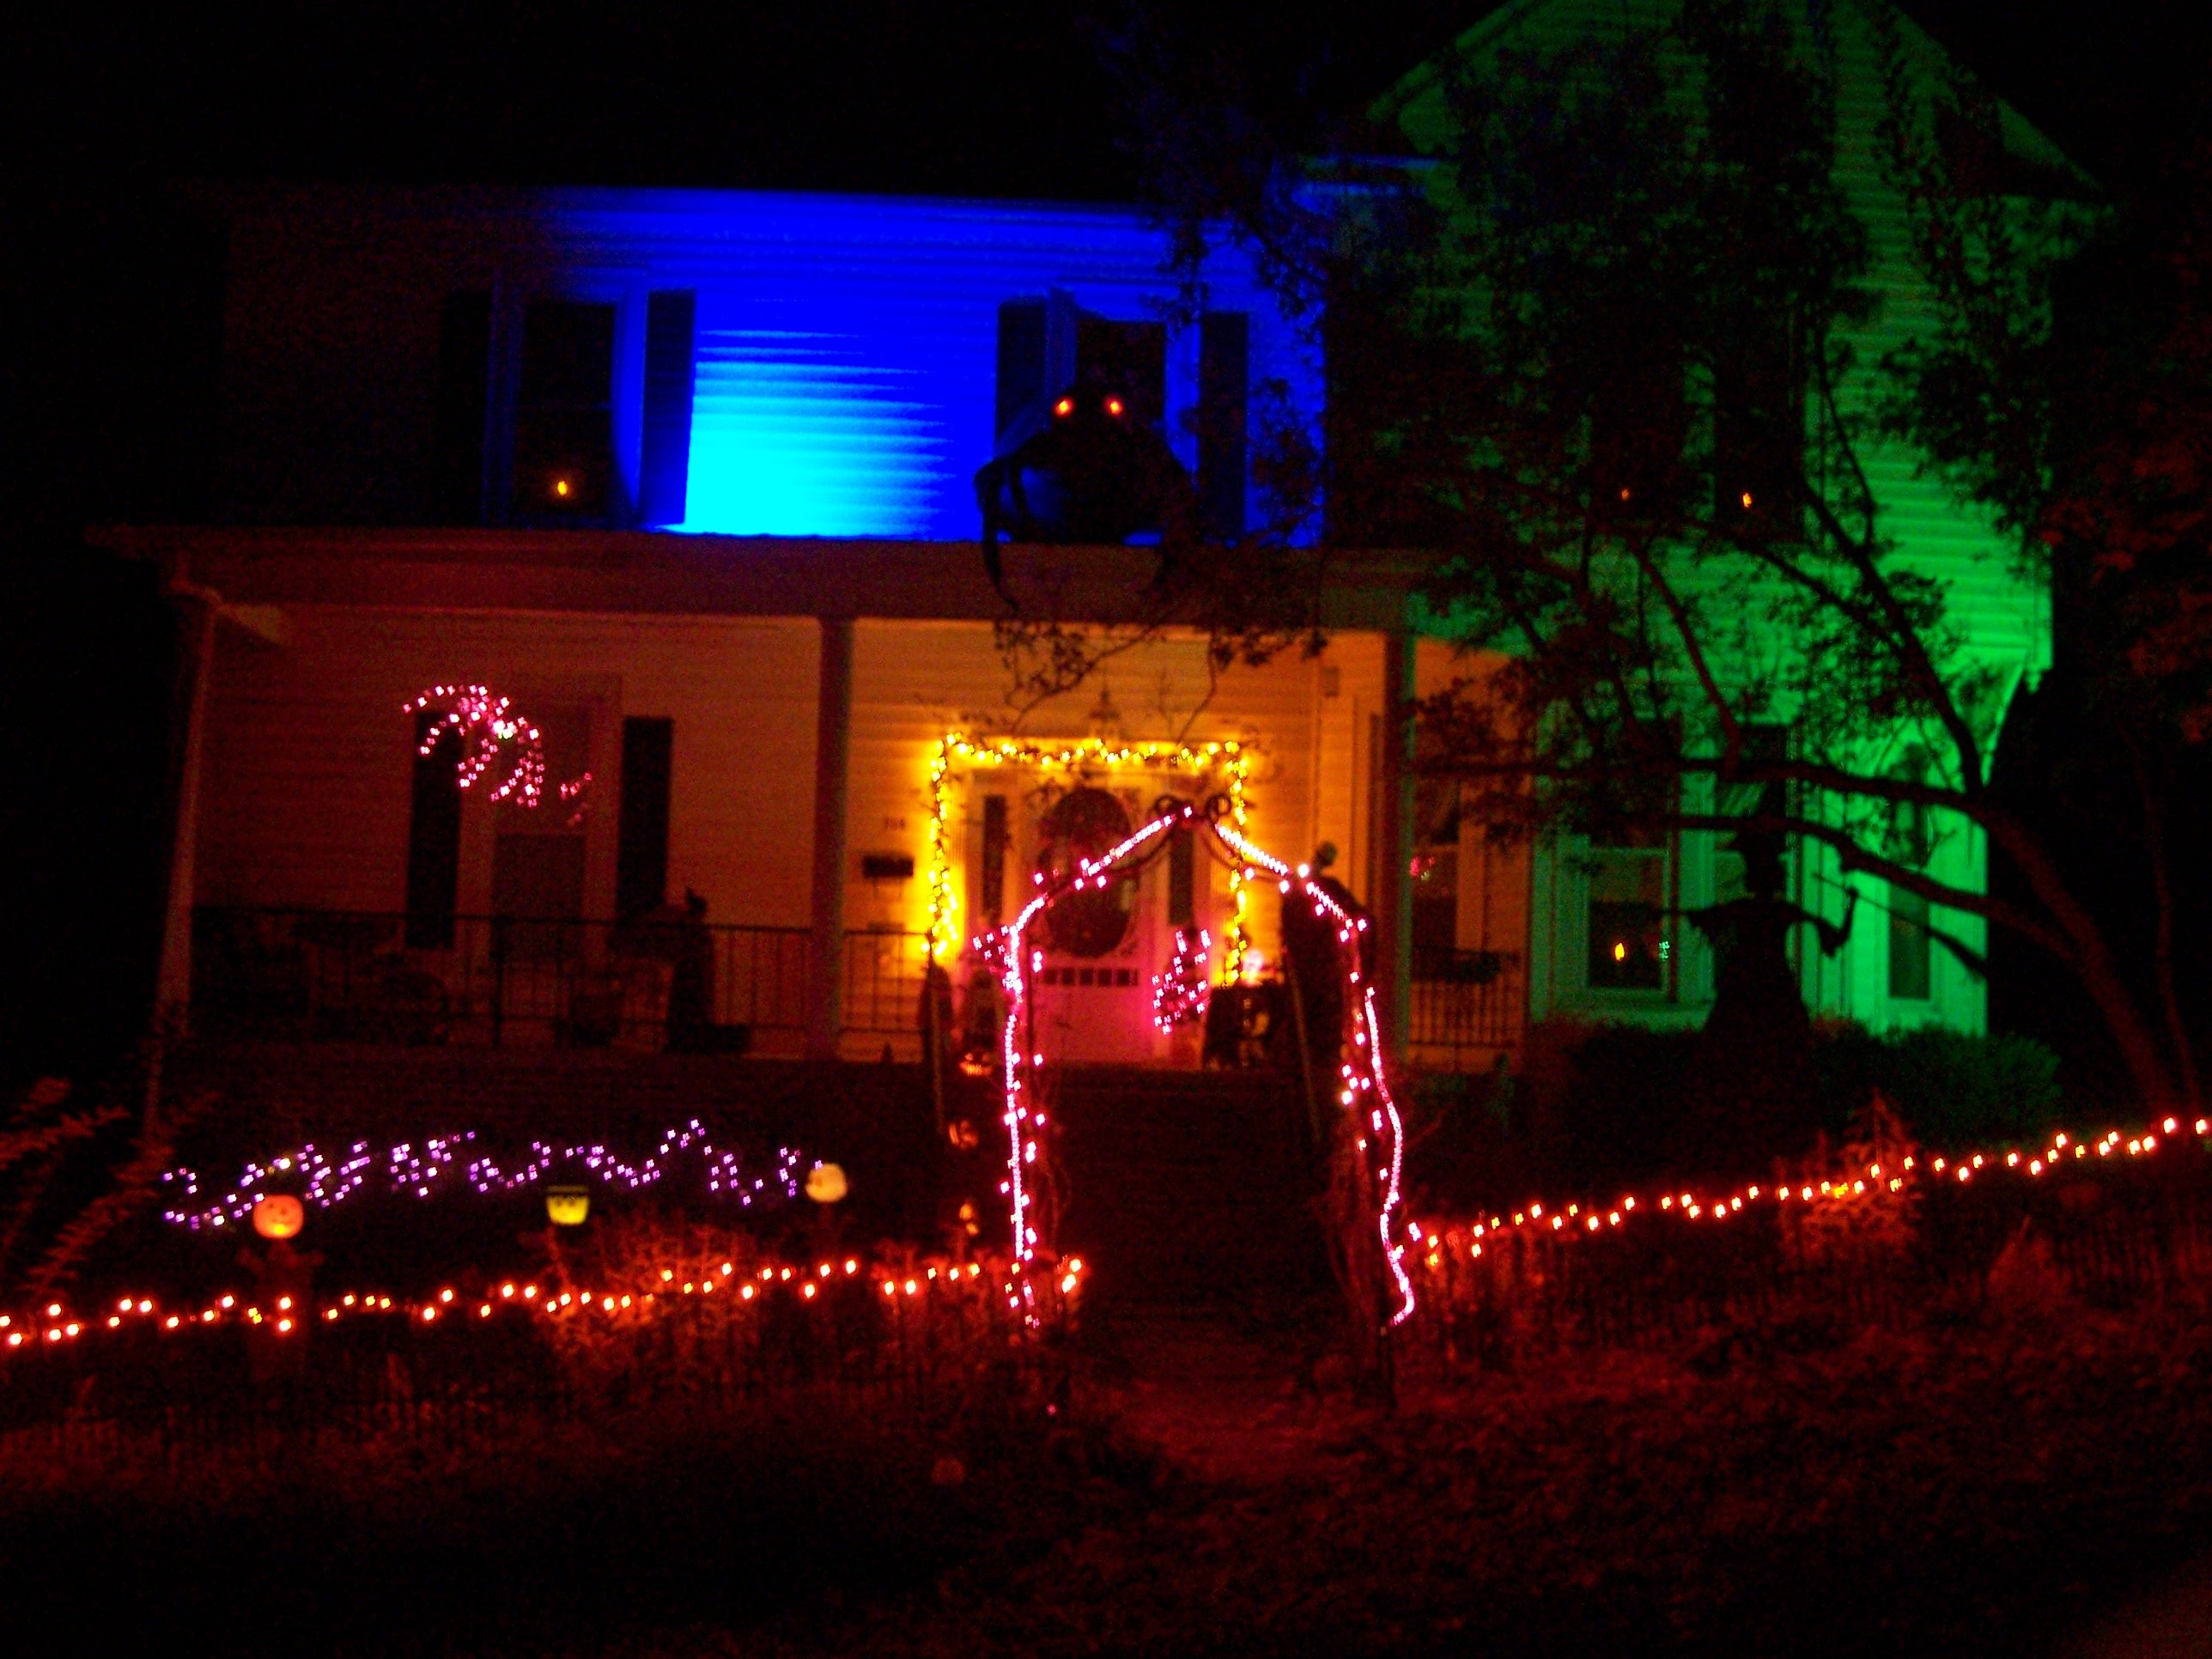 best halloween decorated house susan reeves from tazewell - Halloween Decorated House